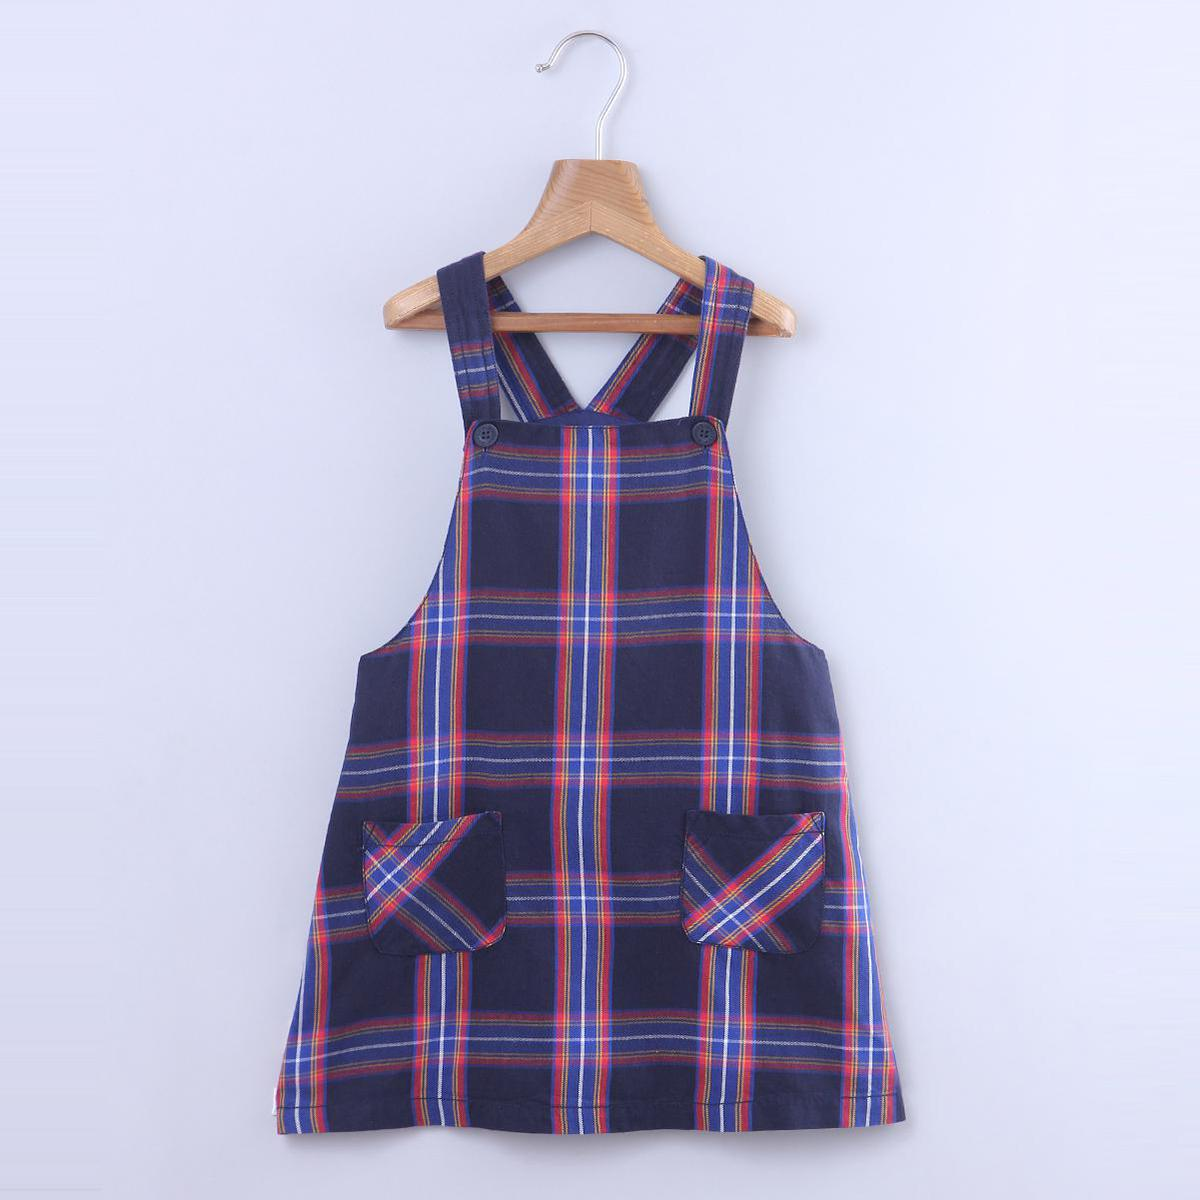 Beebay - Blue Colored Bias Pocket Check Pinafore Cotton Dress For Kids Girls